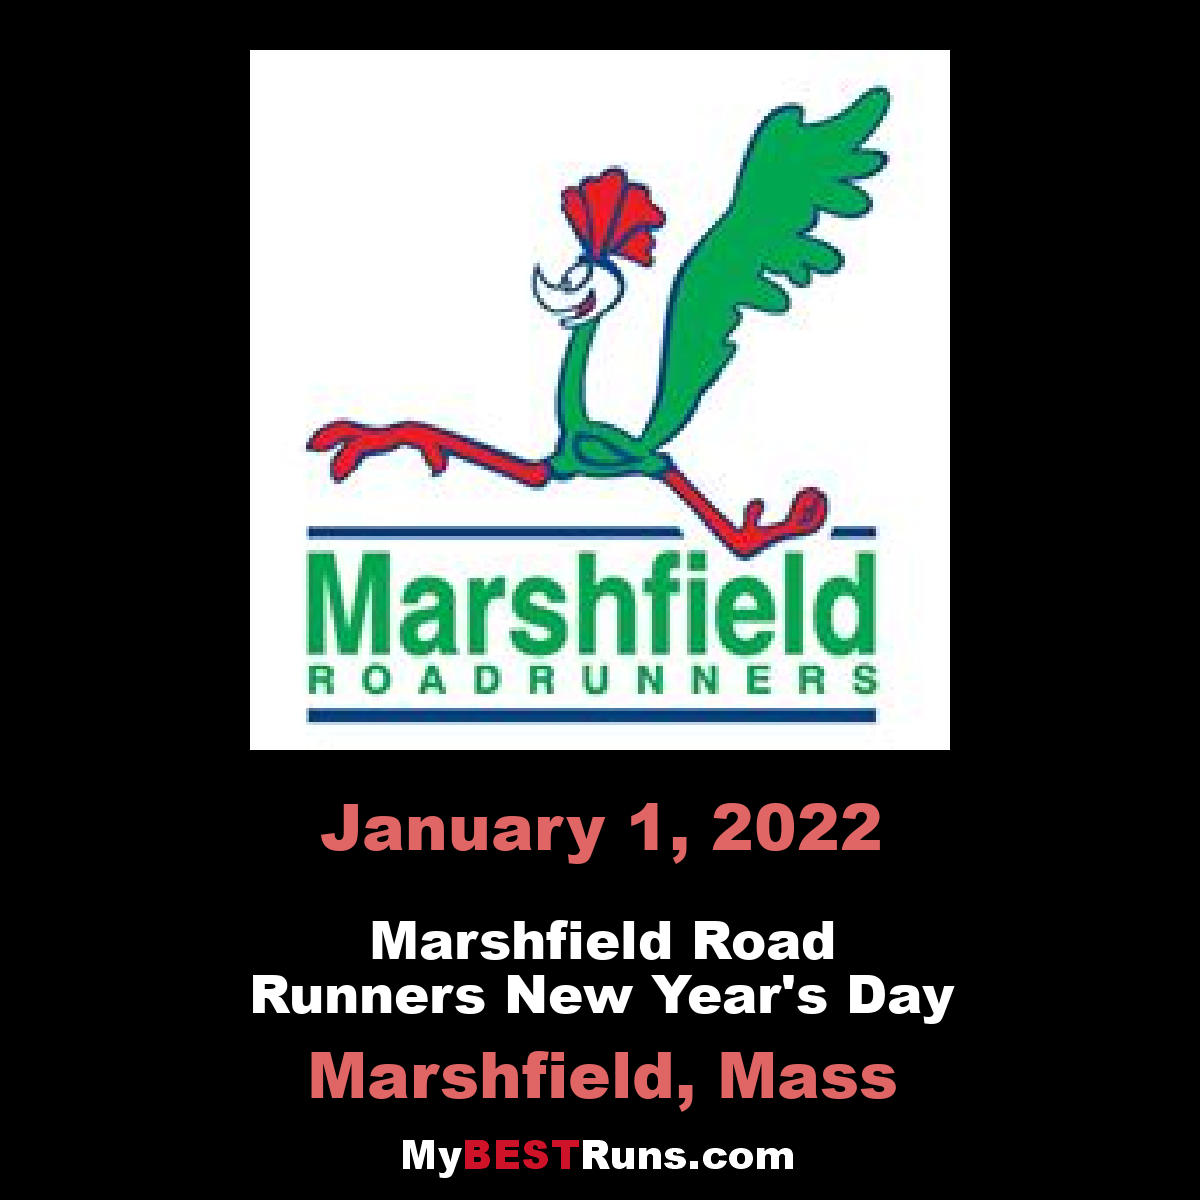 Marshfield Road Runners New Year's Day